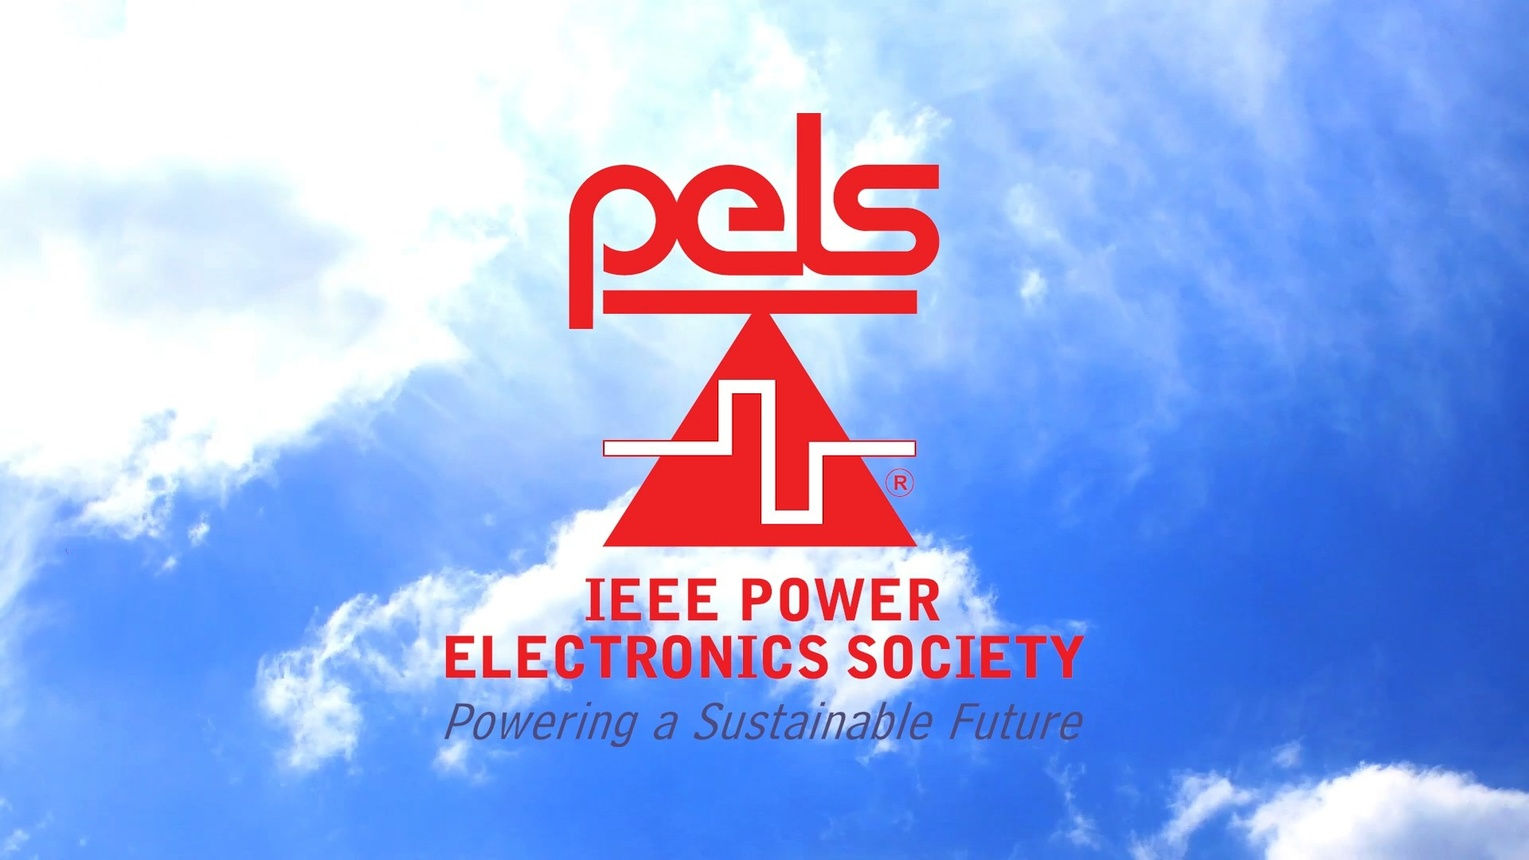 IEEE PELS at 30: Powering the Past, Energizing the Future